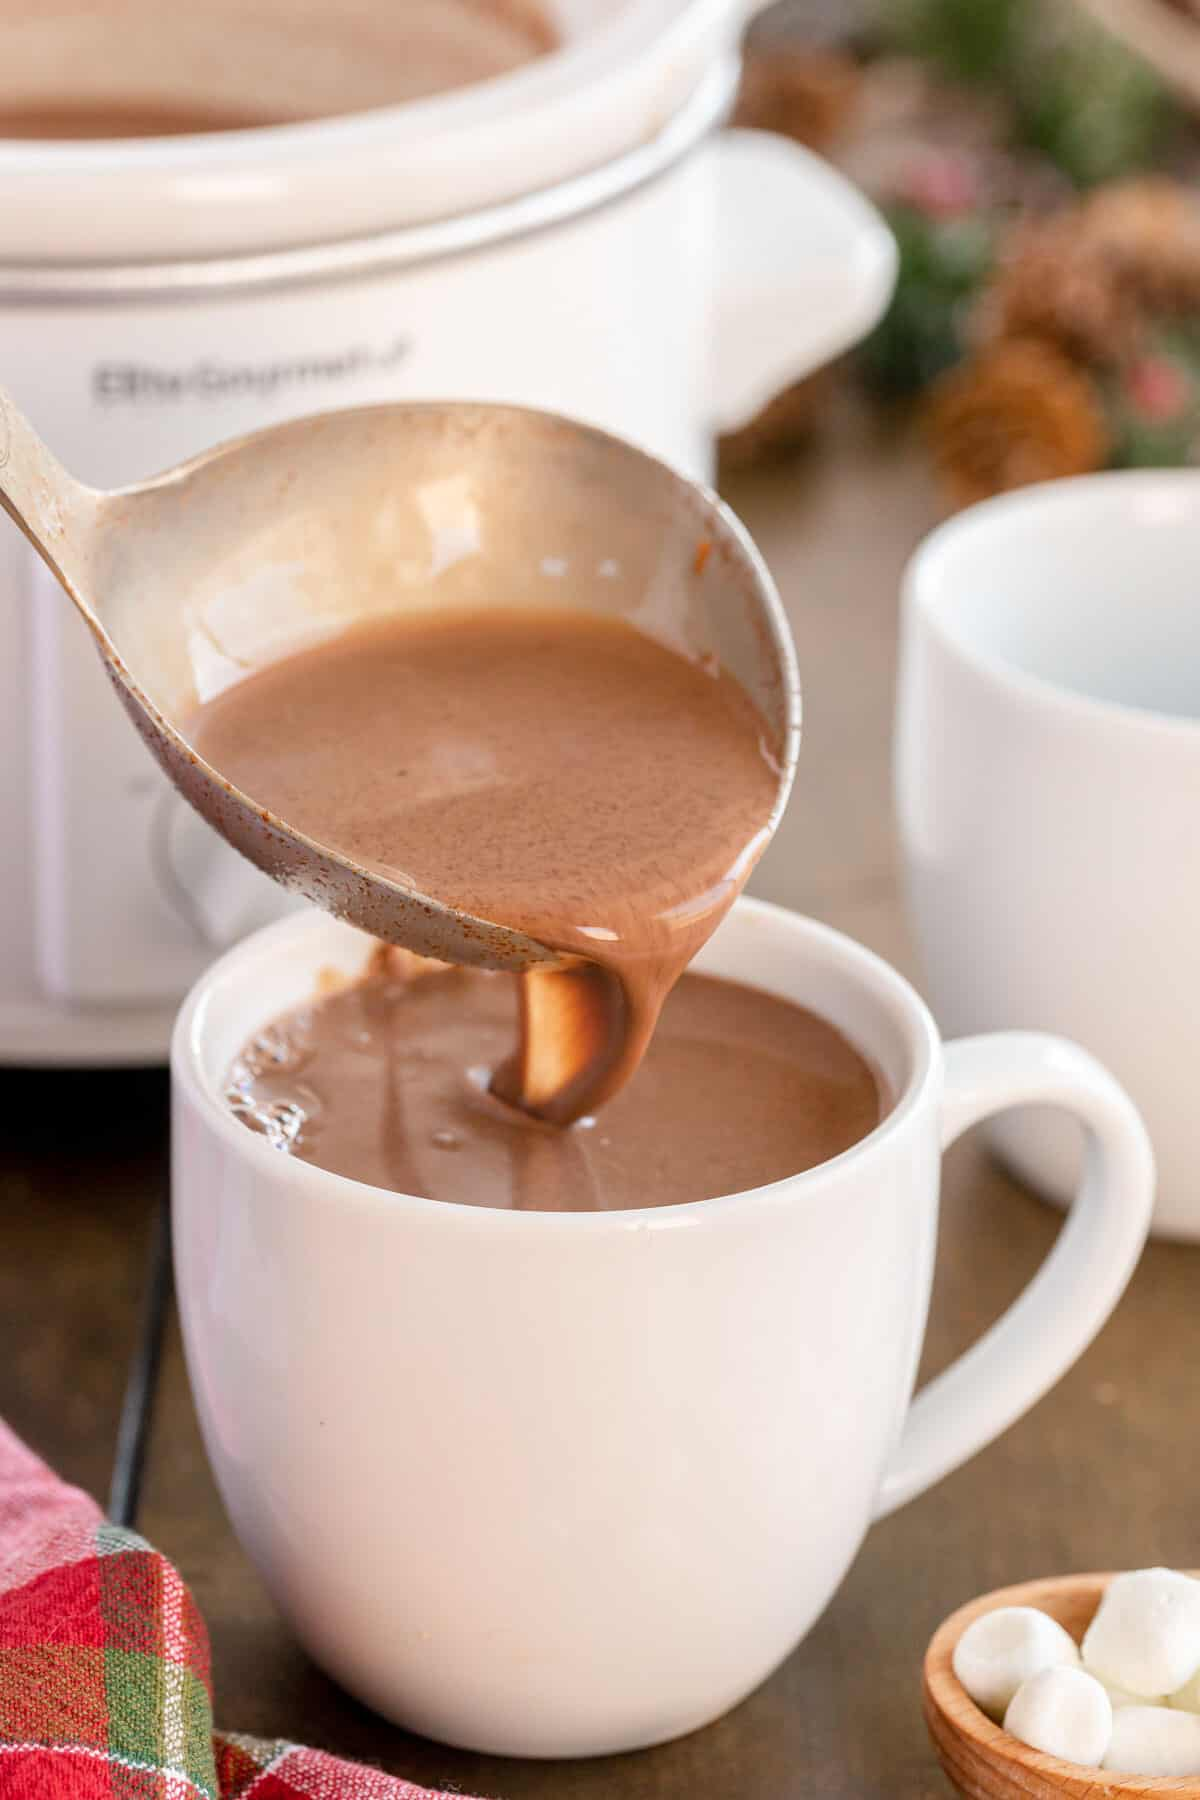 ladle of hot chocolate in a slow cooker